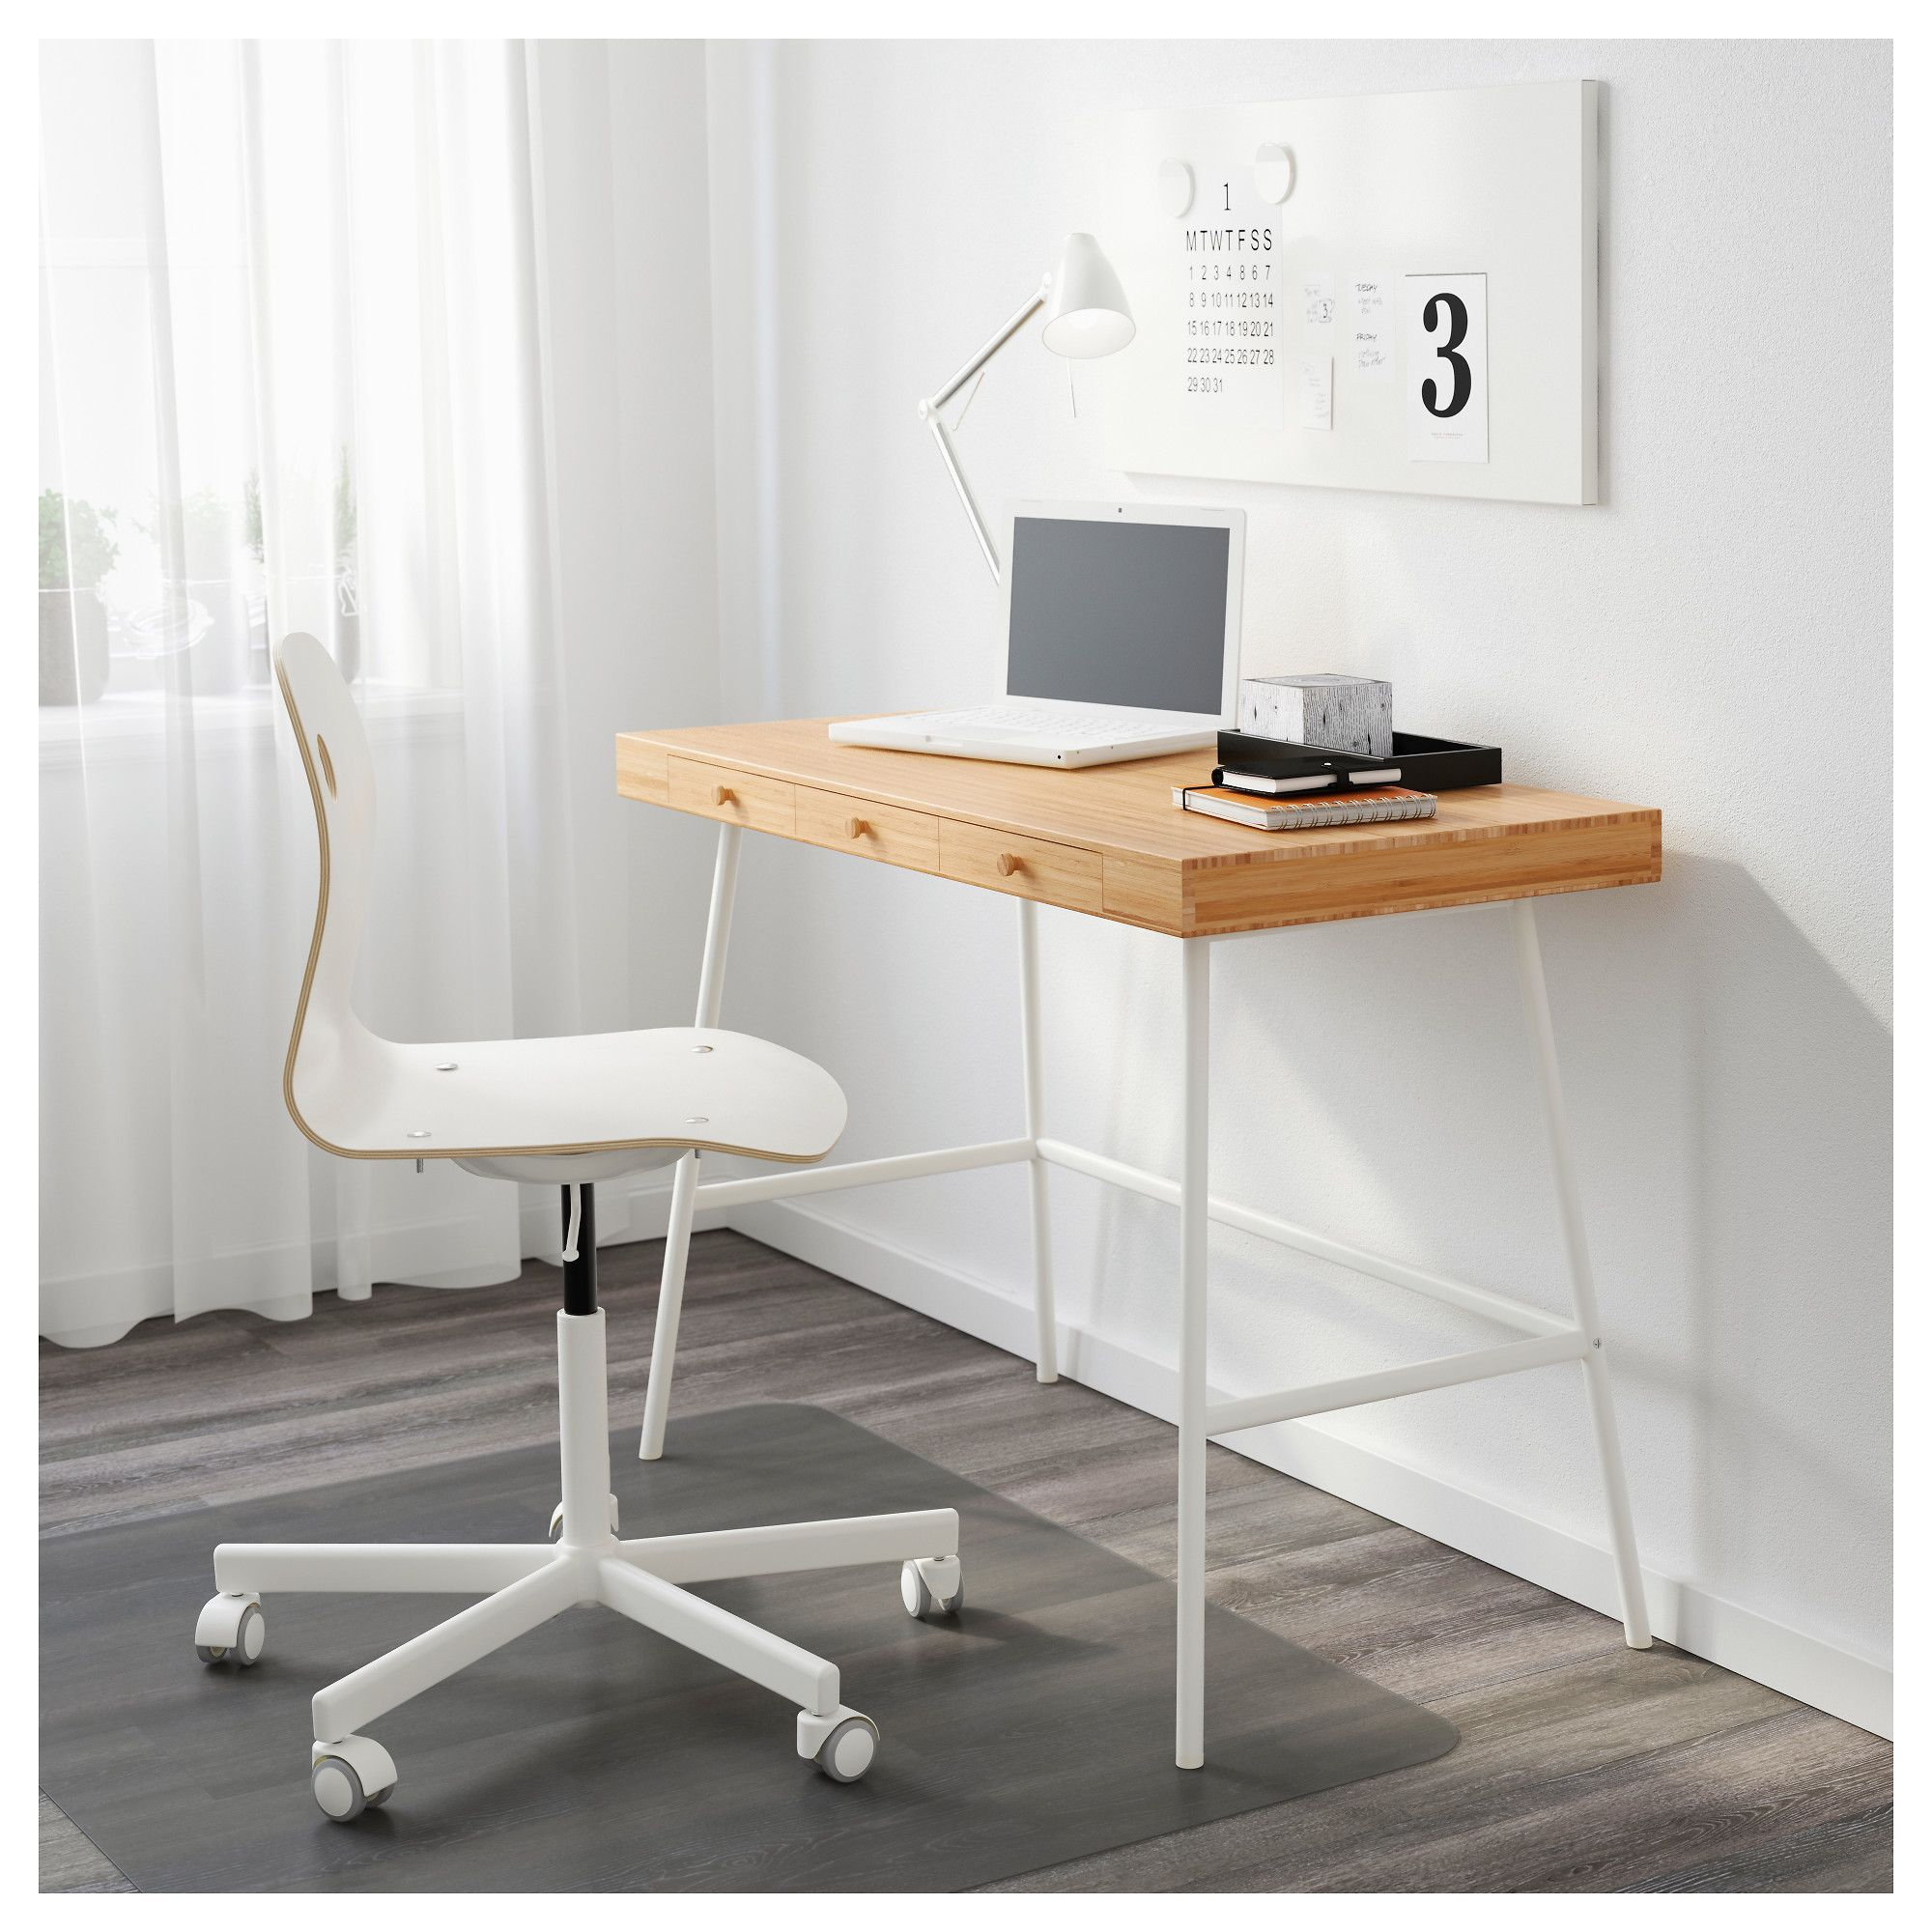 fice desk it modern design desks ideas is space table l study and ikea shaped lovely of home